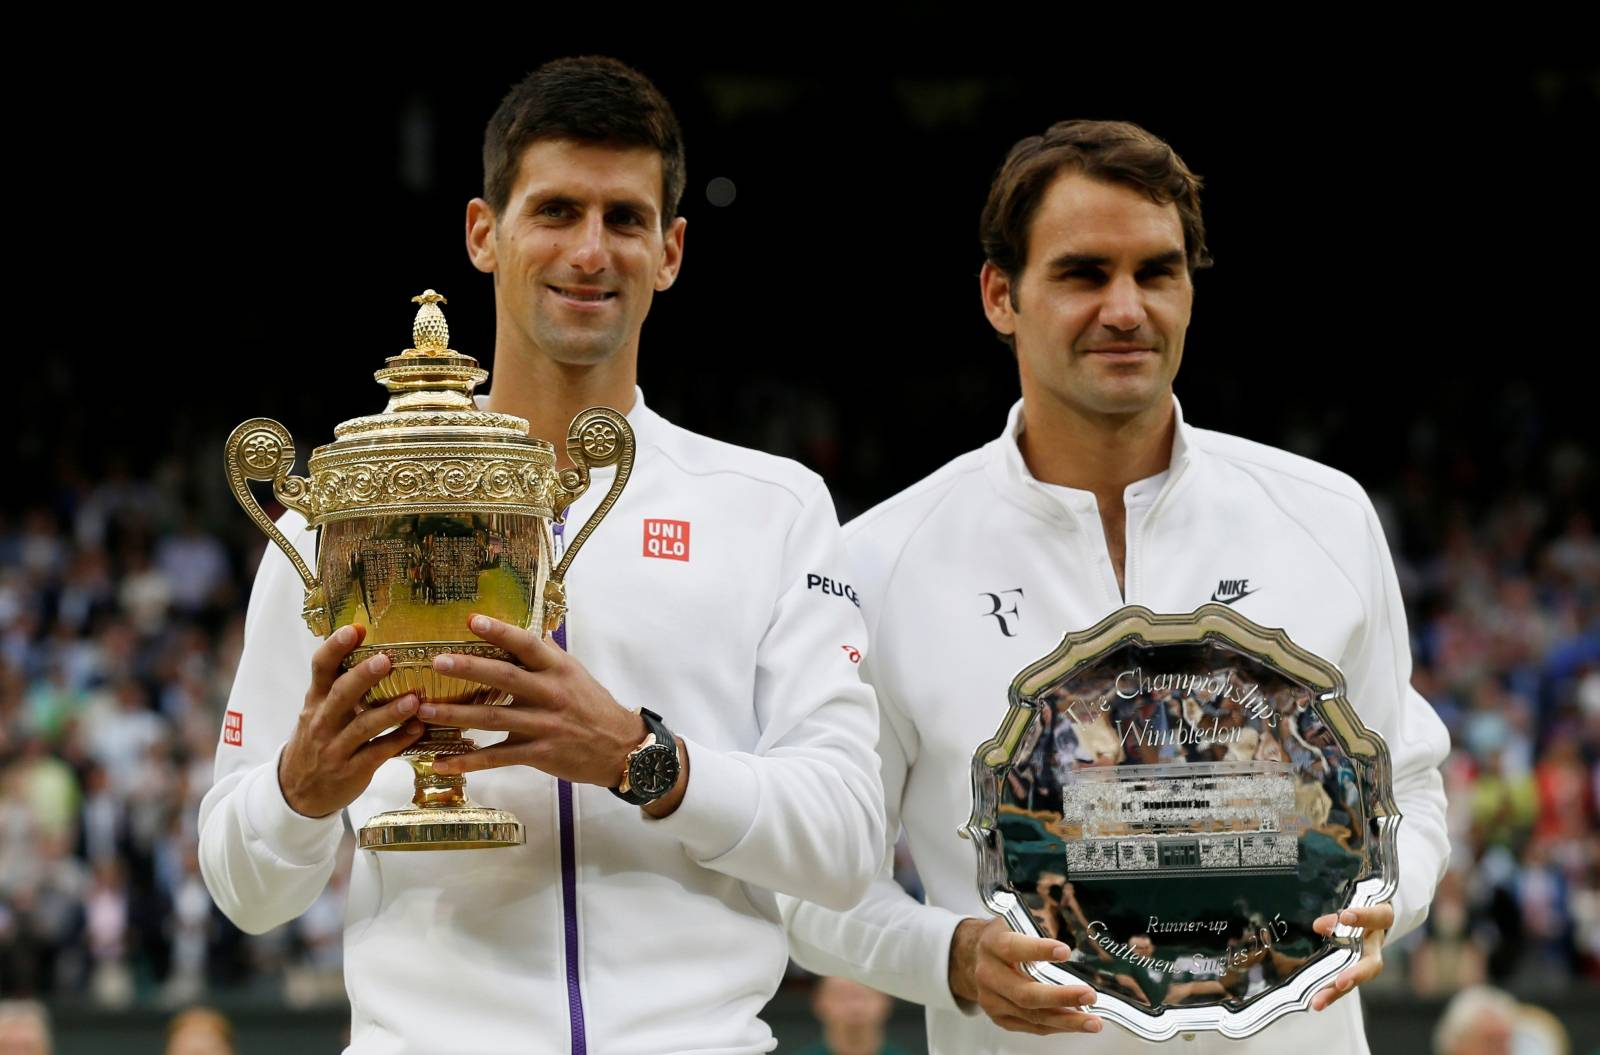 FILE PHOTO: Winner, Novak Djokovic of Serbia and runner up Roger Federer of Switzerland pose with their trophies after their Men's Singles Final match at the Wimbledon Tennis Championships in London